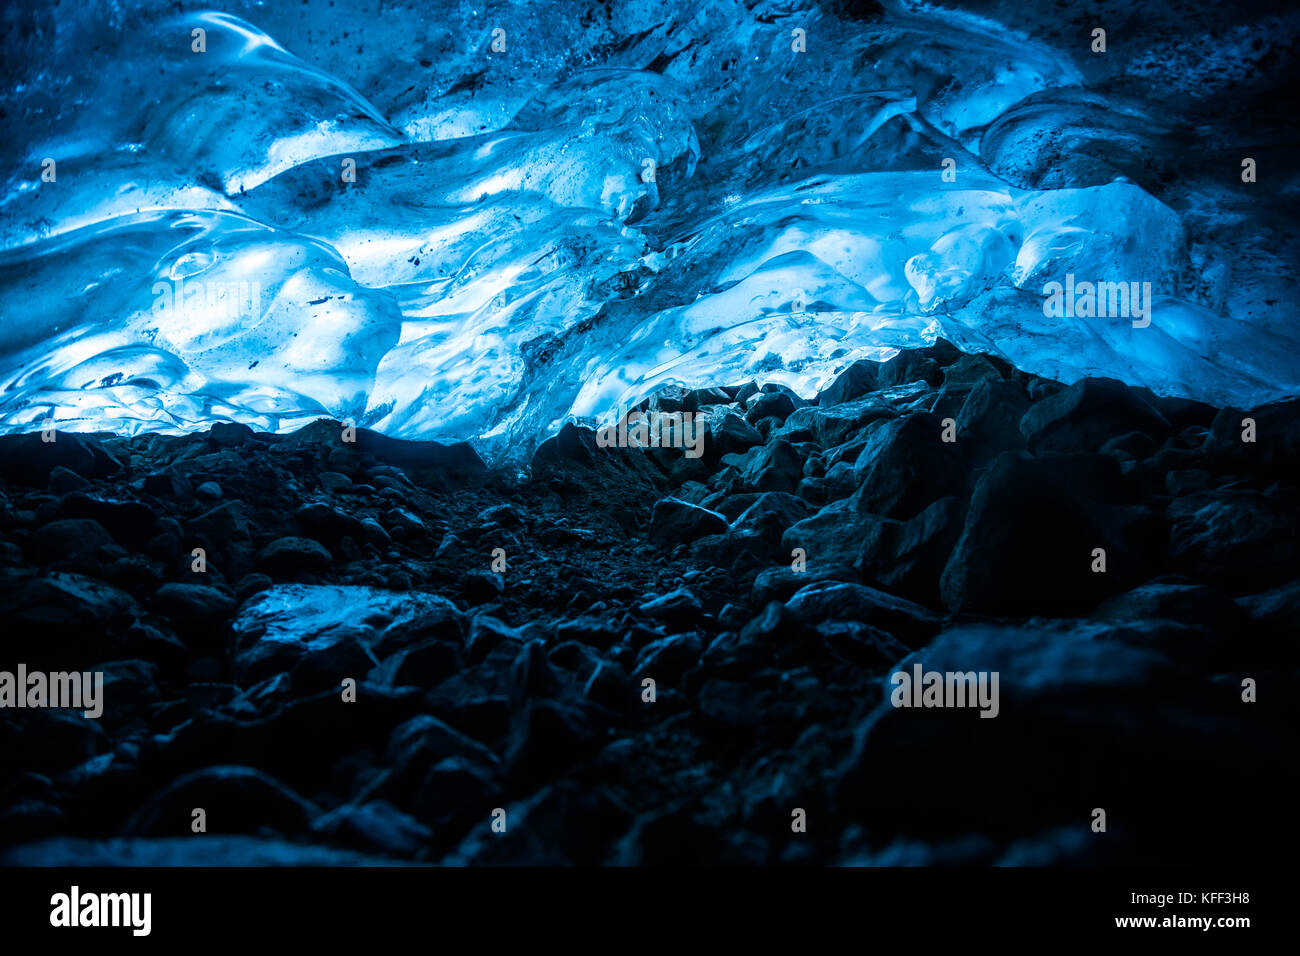 In a narrow tunnel under a glacier in British Columbia, Canada, the ice above glows blue from the sun shining through - Stock Image